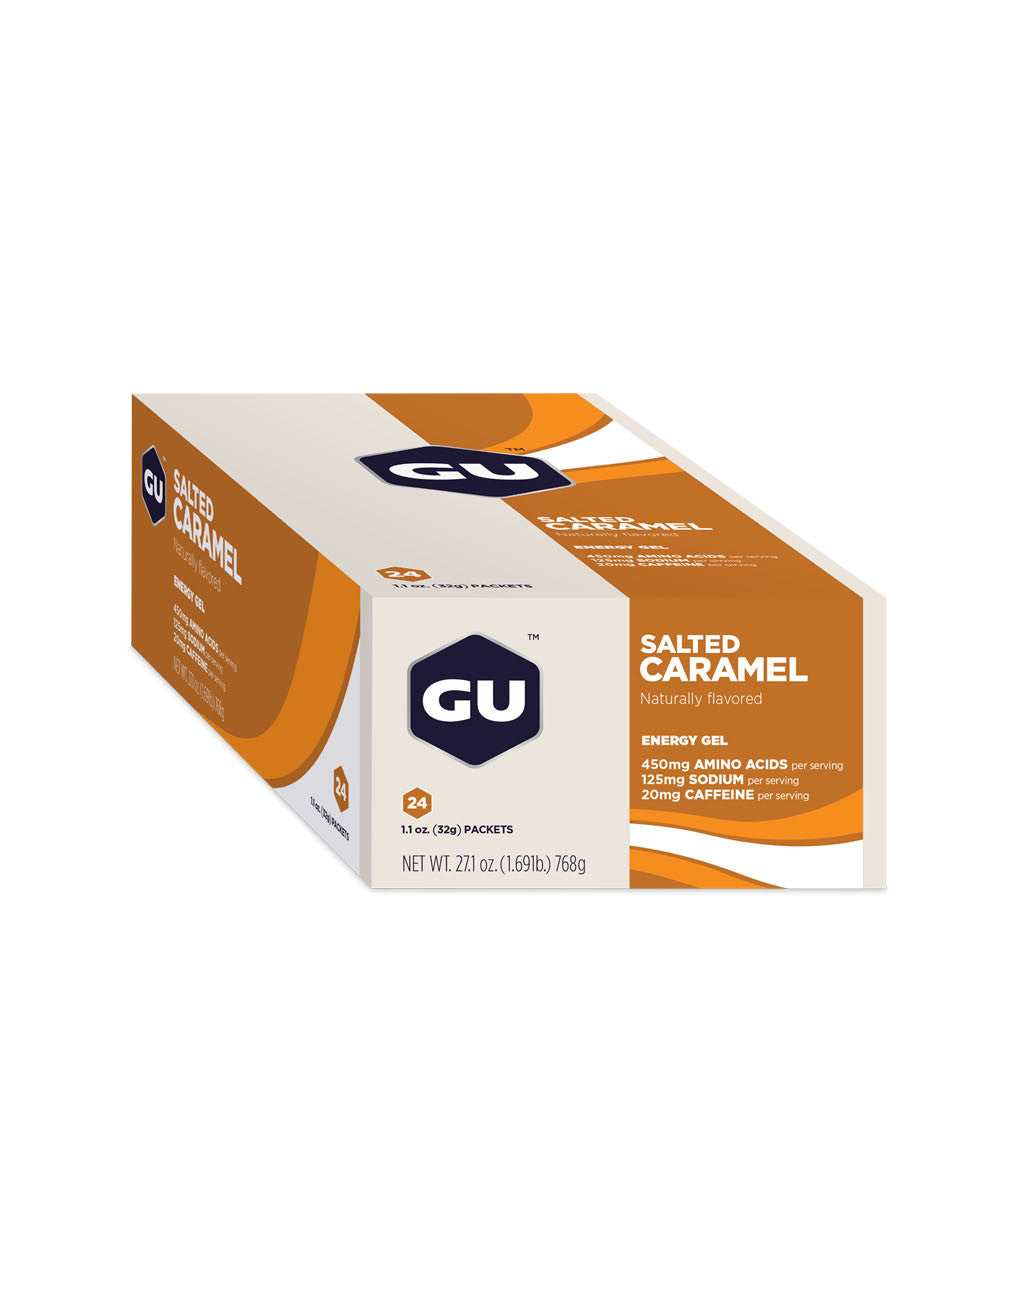 GU Energy Gel (24ct box)Salted Caramel_master_image